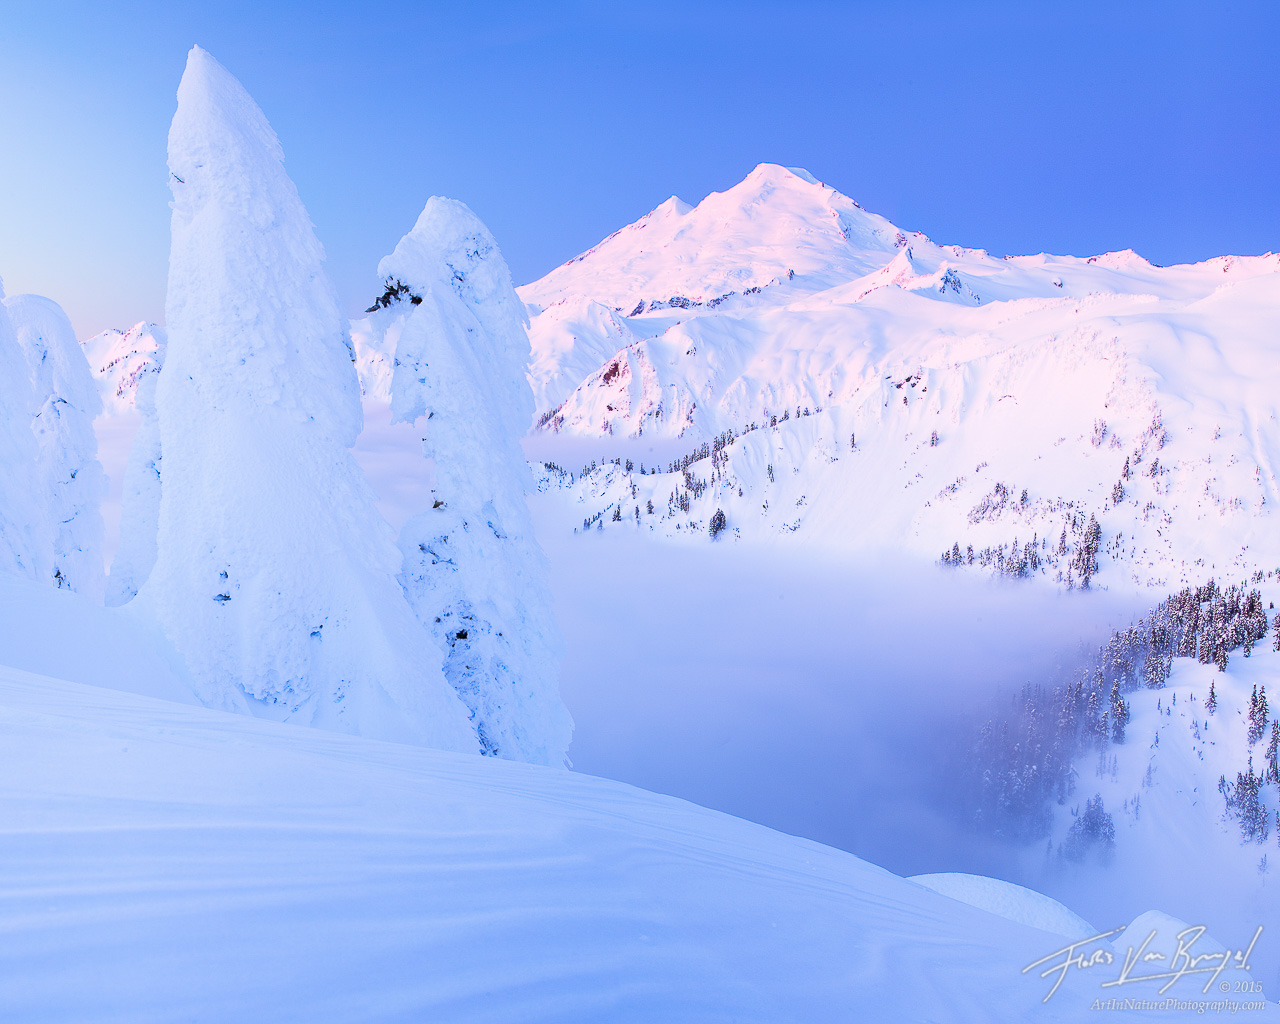 Mount Baker from Artist Point, Snowy Winter, Washington, photo